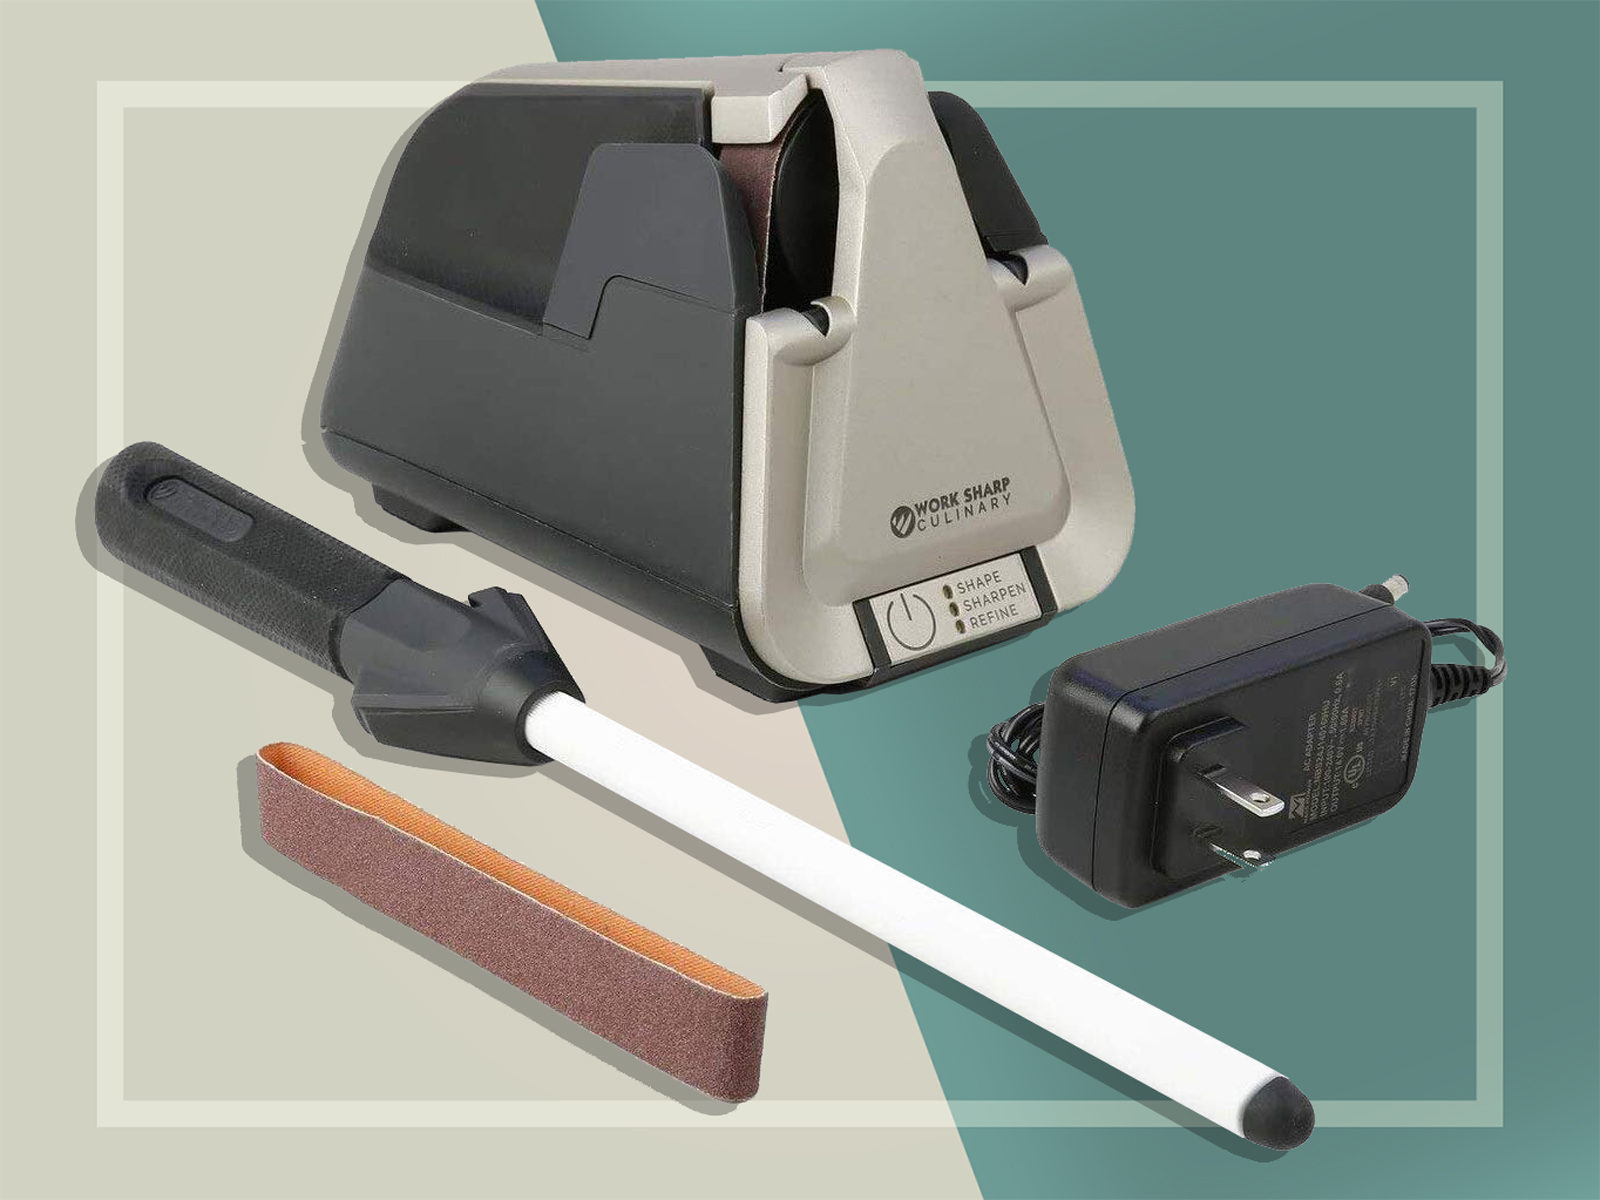 Work Sharp Knife Sharpener